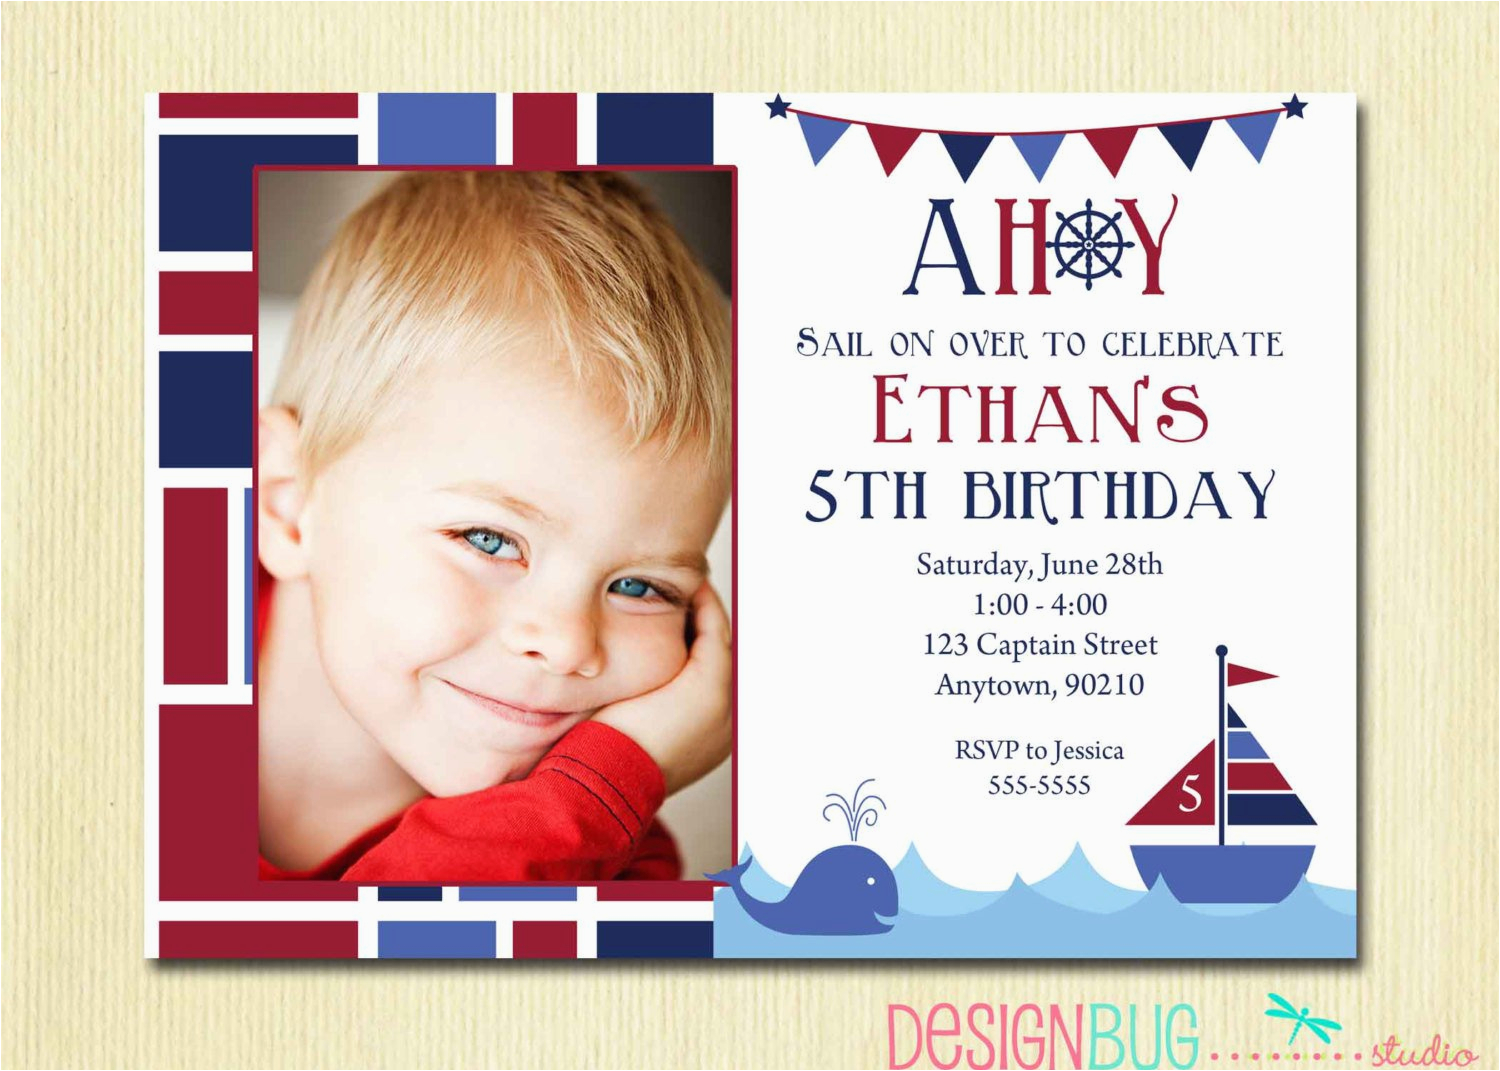 5 Year Old Birthday Party Invitation Wording For Boy Best